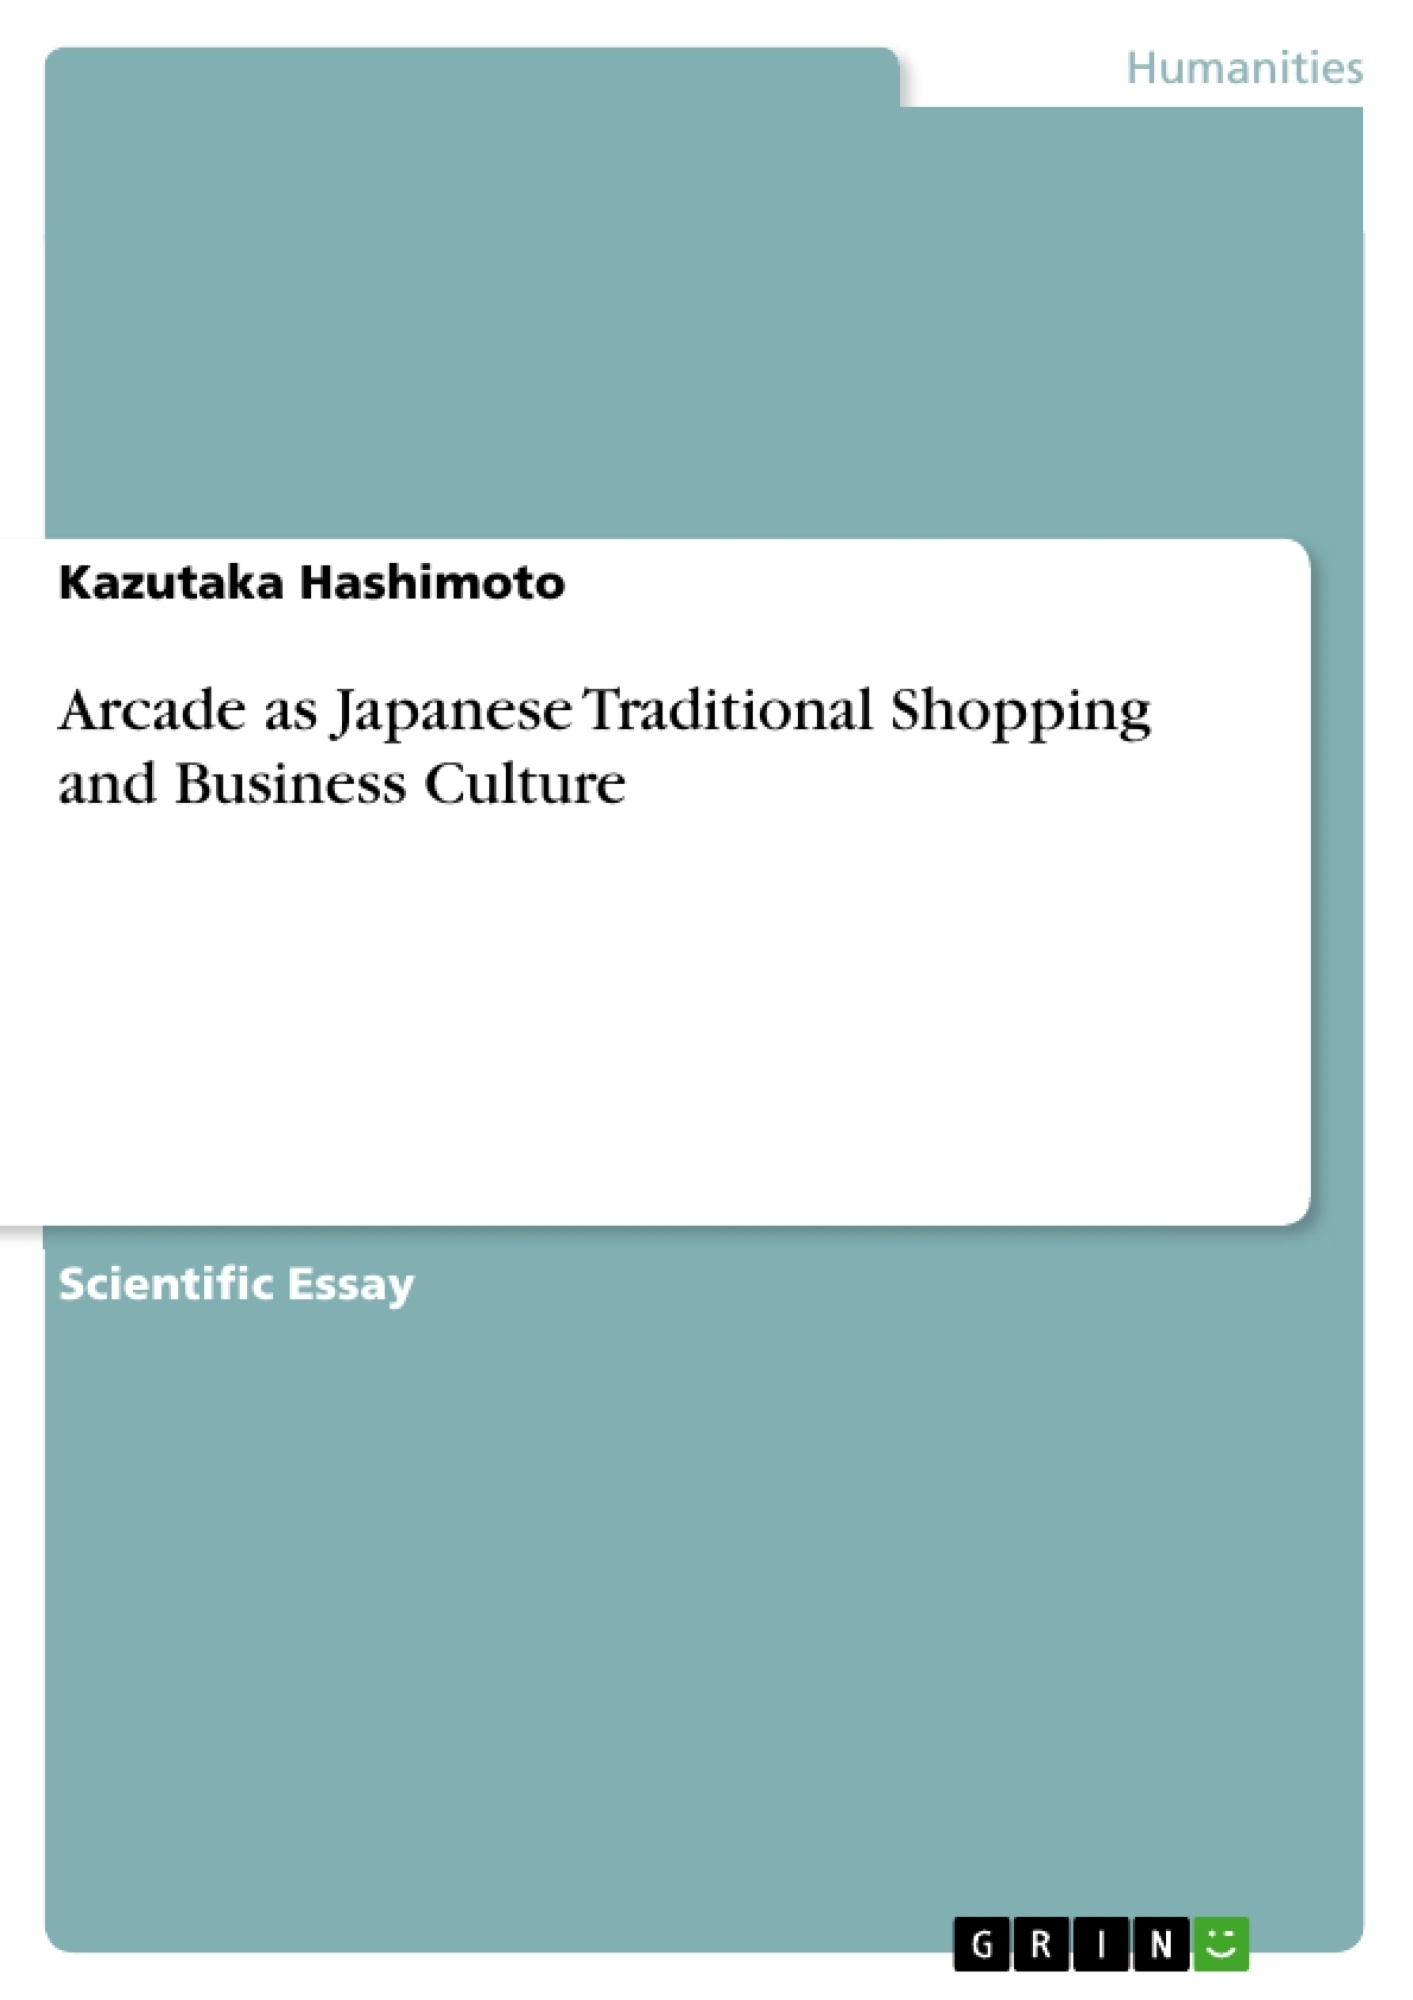 Title: Arcade as Japanese Traditional Shopping and Business Culture